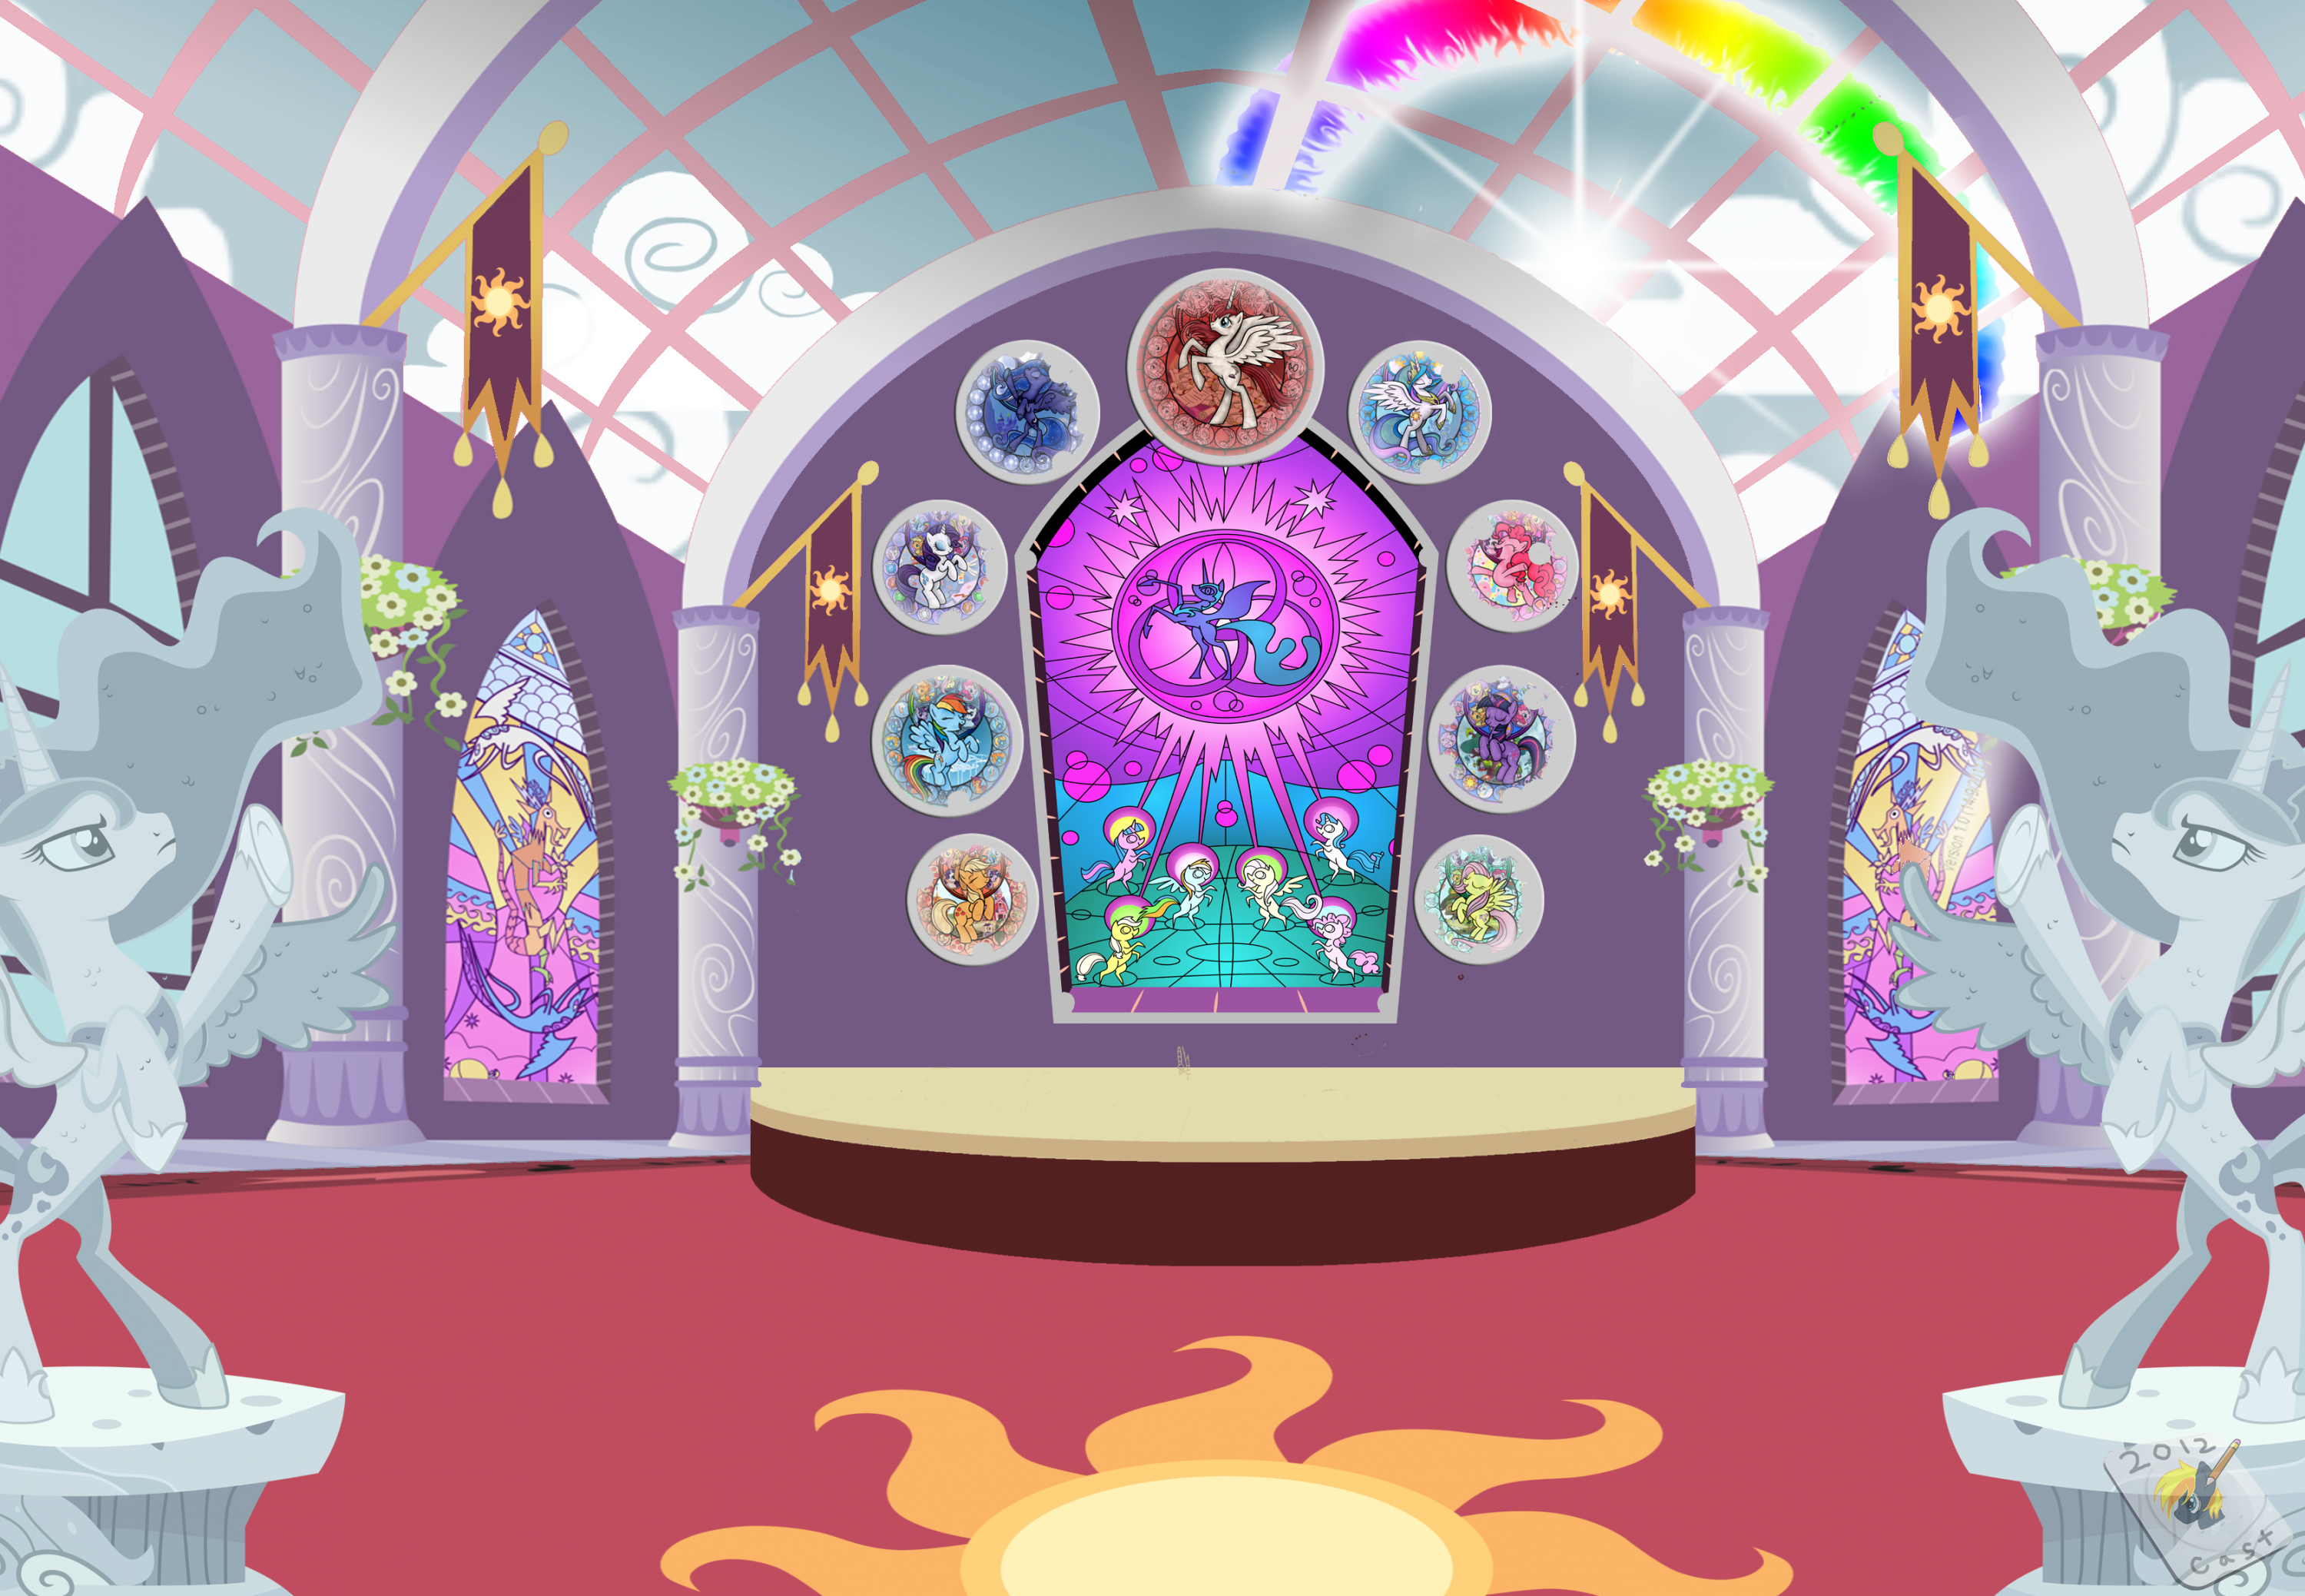 prince lightning and pinkie wedding scene visual fan art